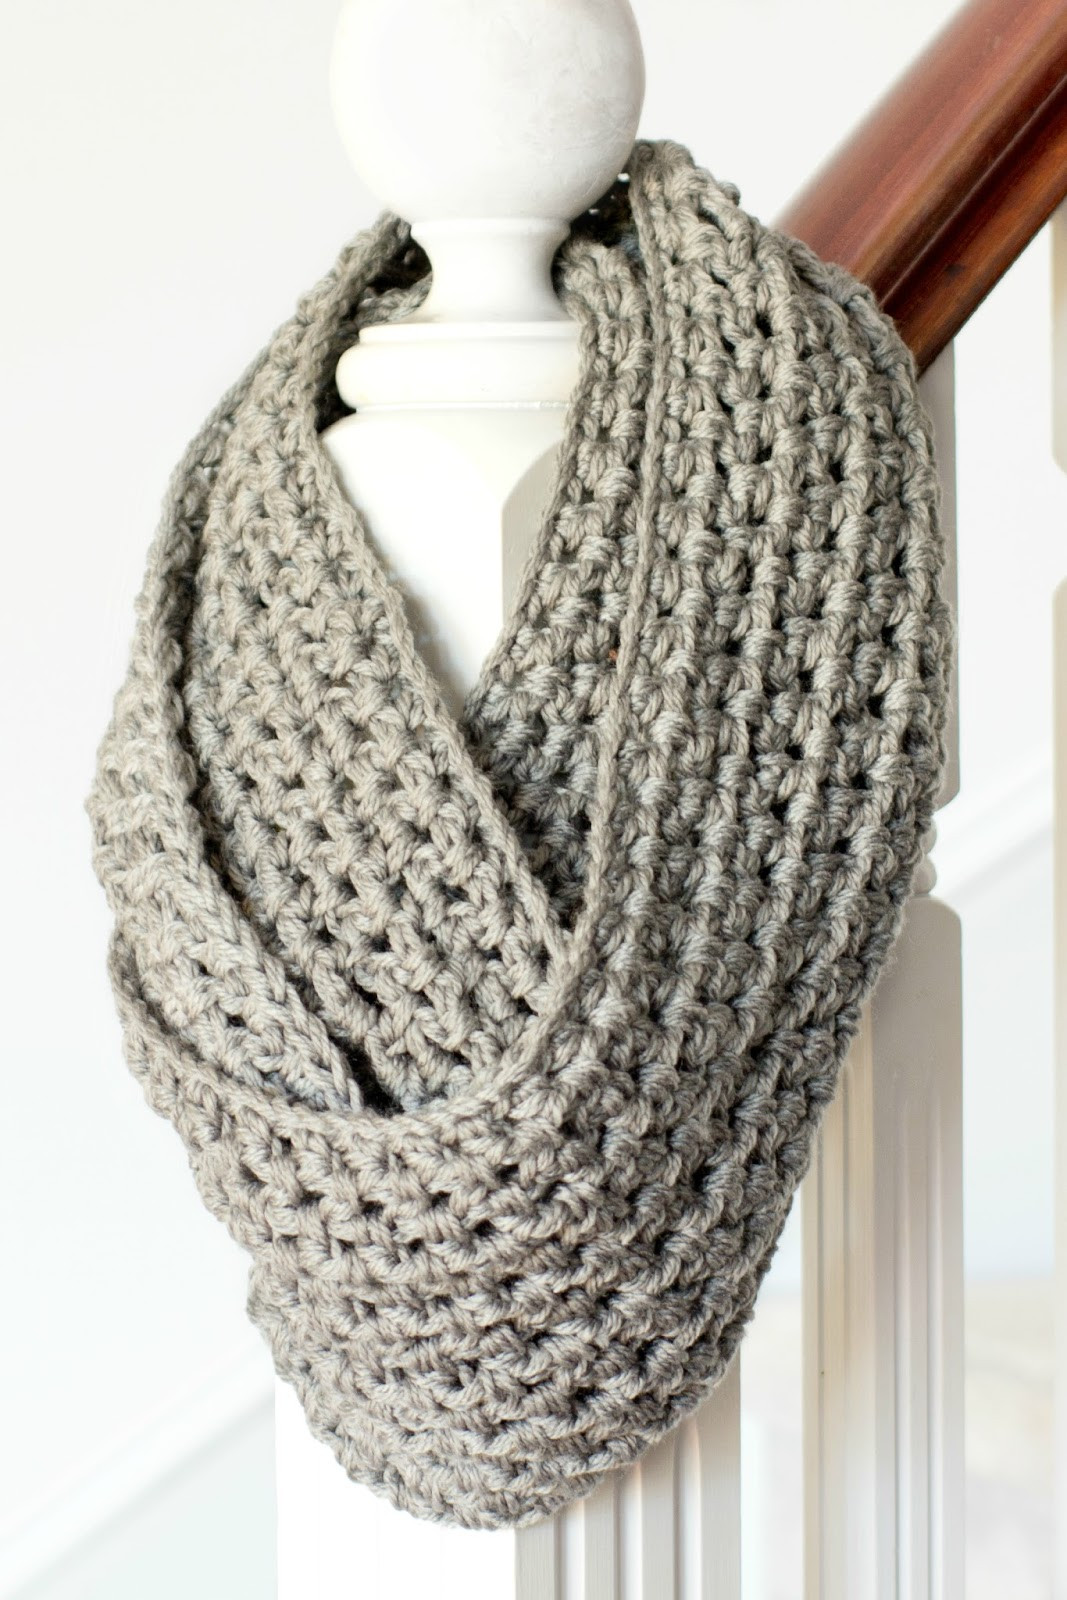 Elegant 42 Fun and Cozy Diy Scarves Crafts to Make Infinity Cowl Crochet Pattern Of Awesome 49 Pics Infinity Cowl Crochet Pattern